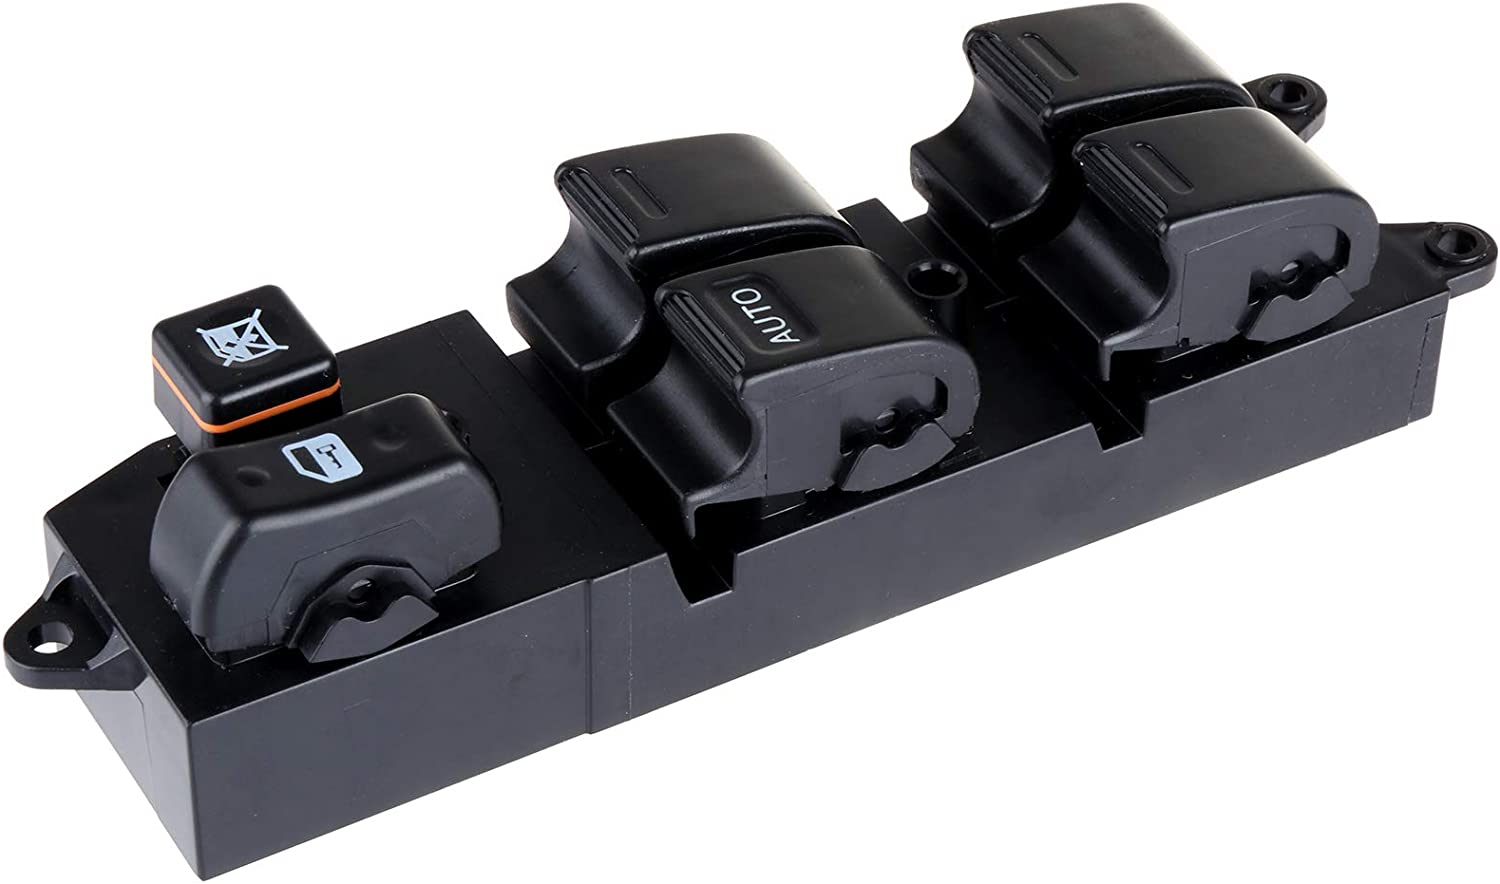 Window Switch Power Window Switch Master Control Power Window Switch Front Driver Side Replacement Parts fits for 1998-1999 Toyota Avalon 1997-2001 Toyota Camry 1998-2002 Toyota Corolla 84820AA011 ROADFAR 121576-5231-1756467471